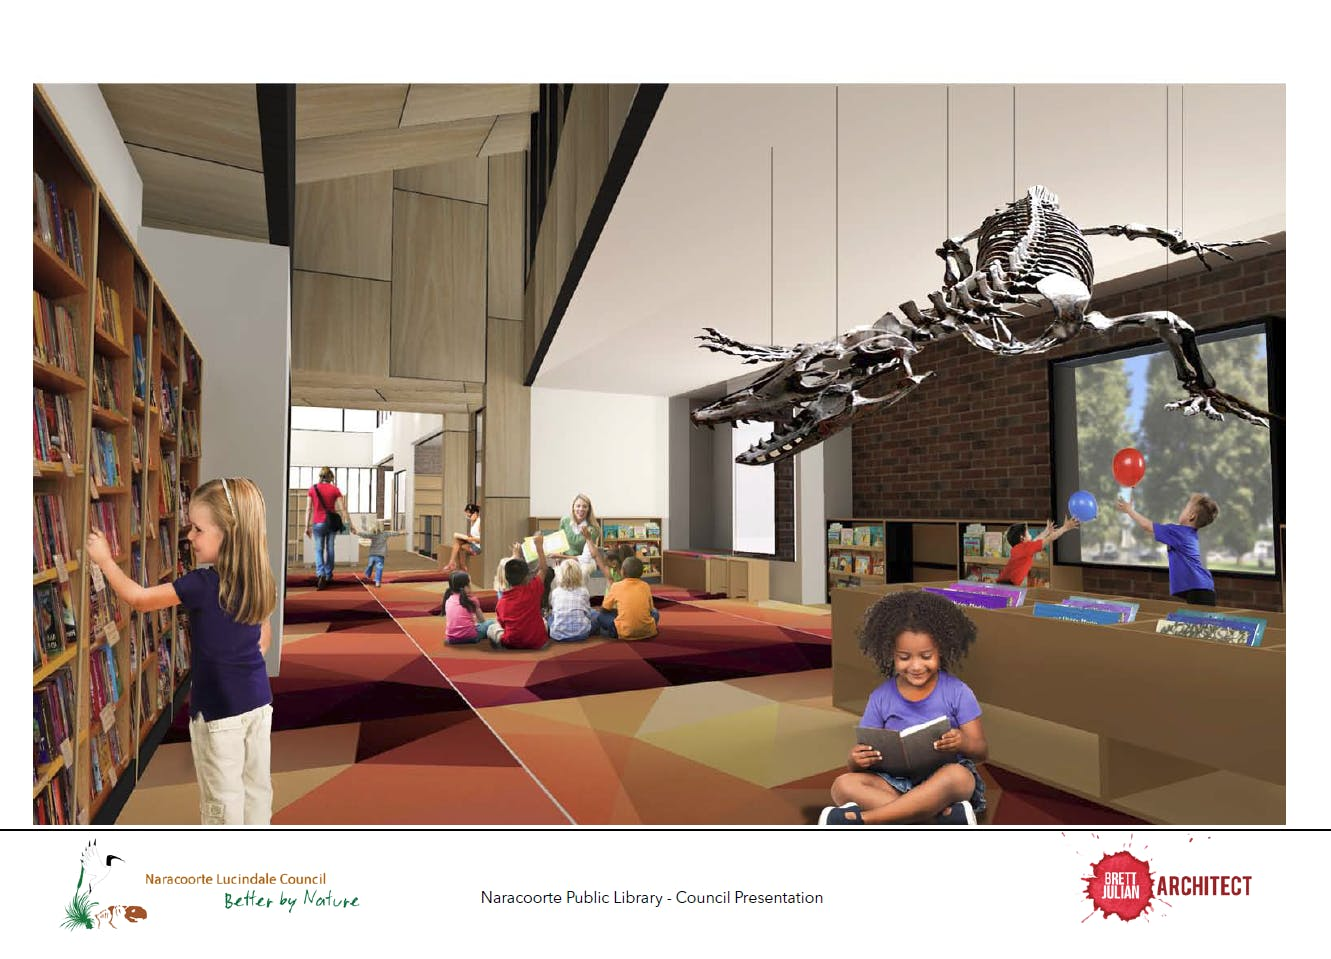 7. Schematic Design Childrens Area